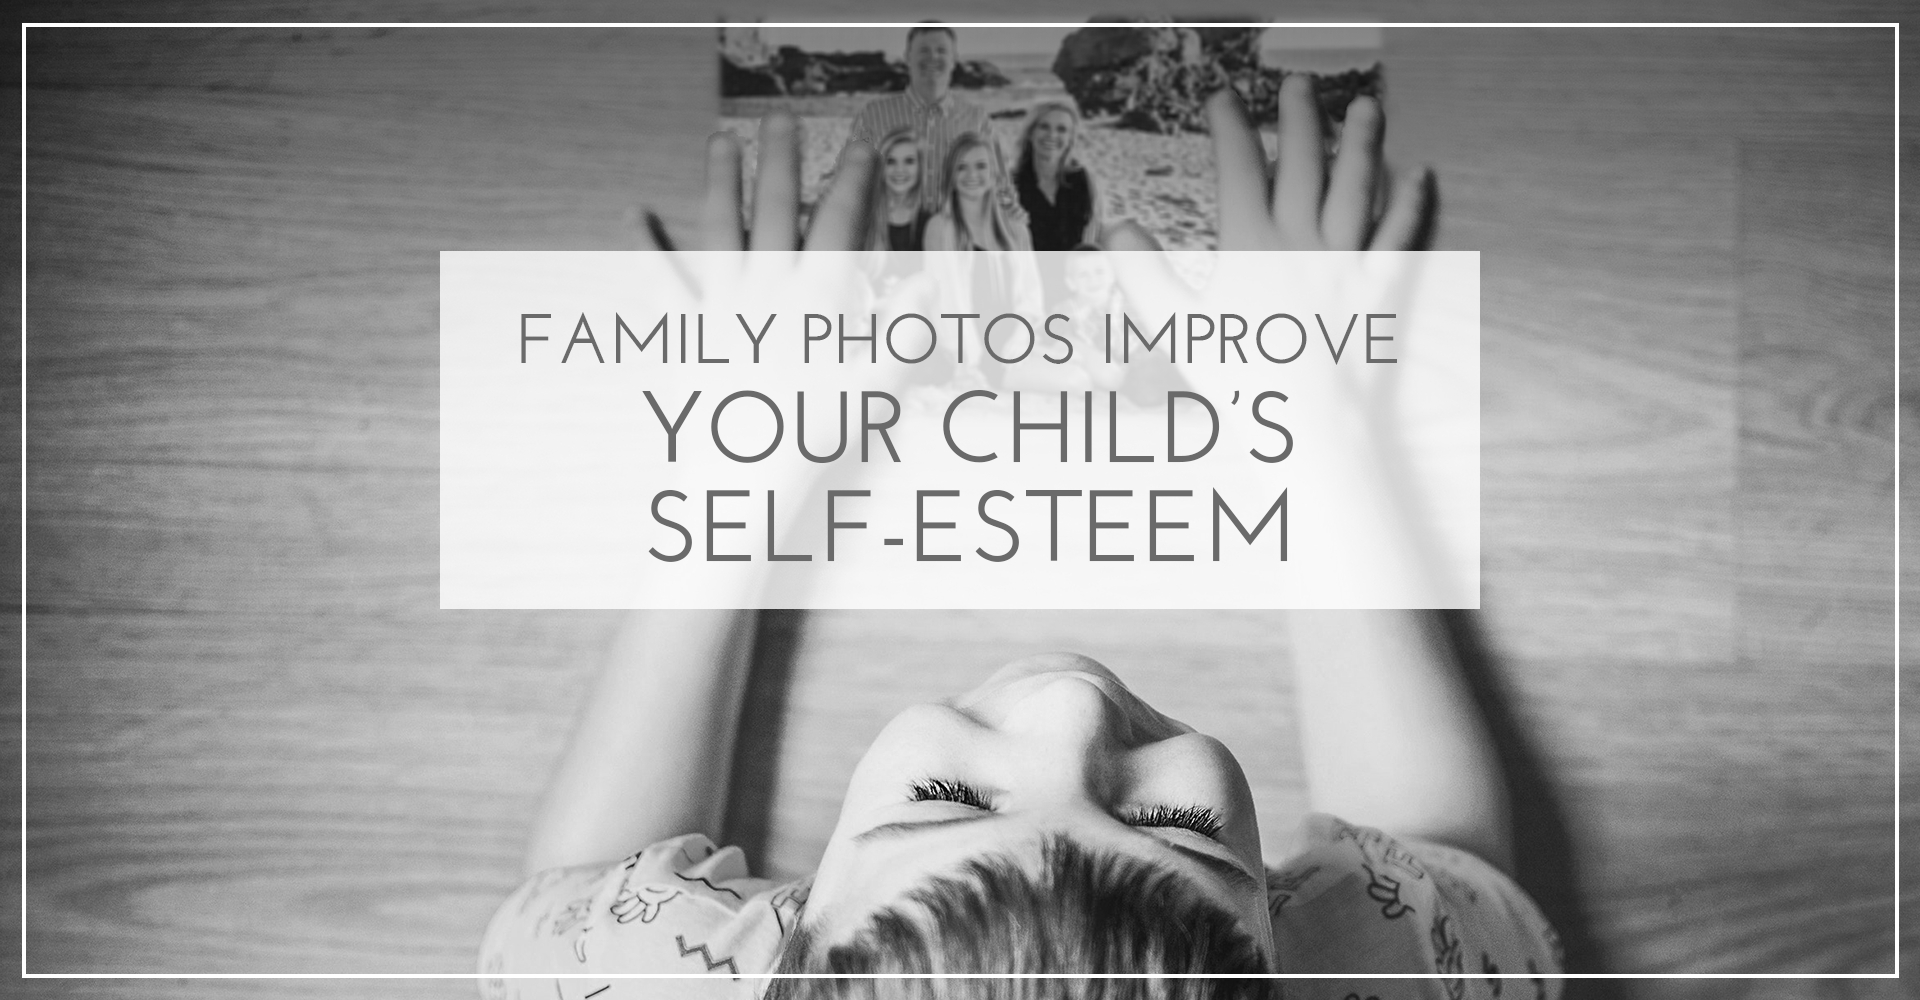 Family photos improve children's self-esteem